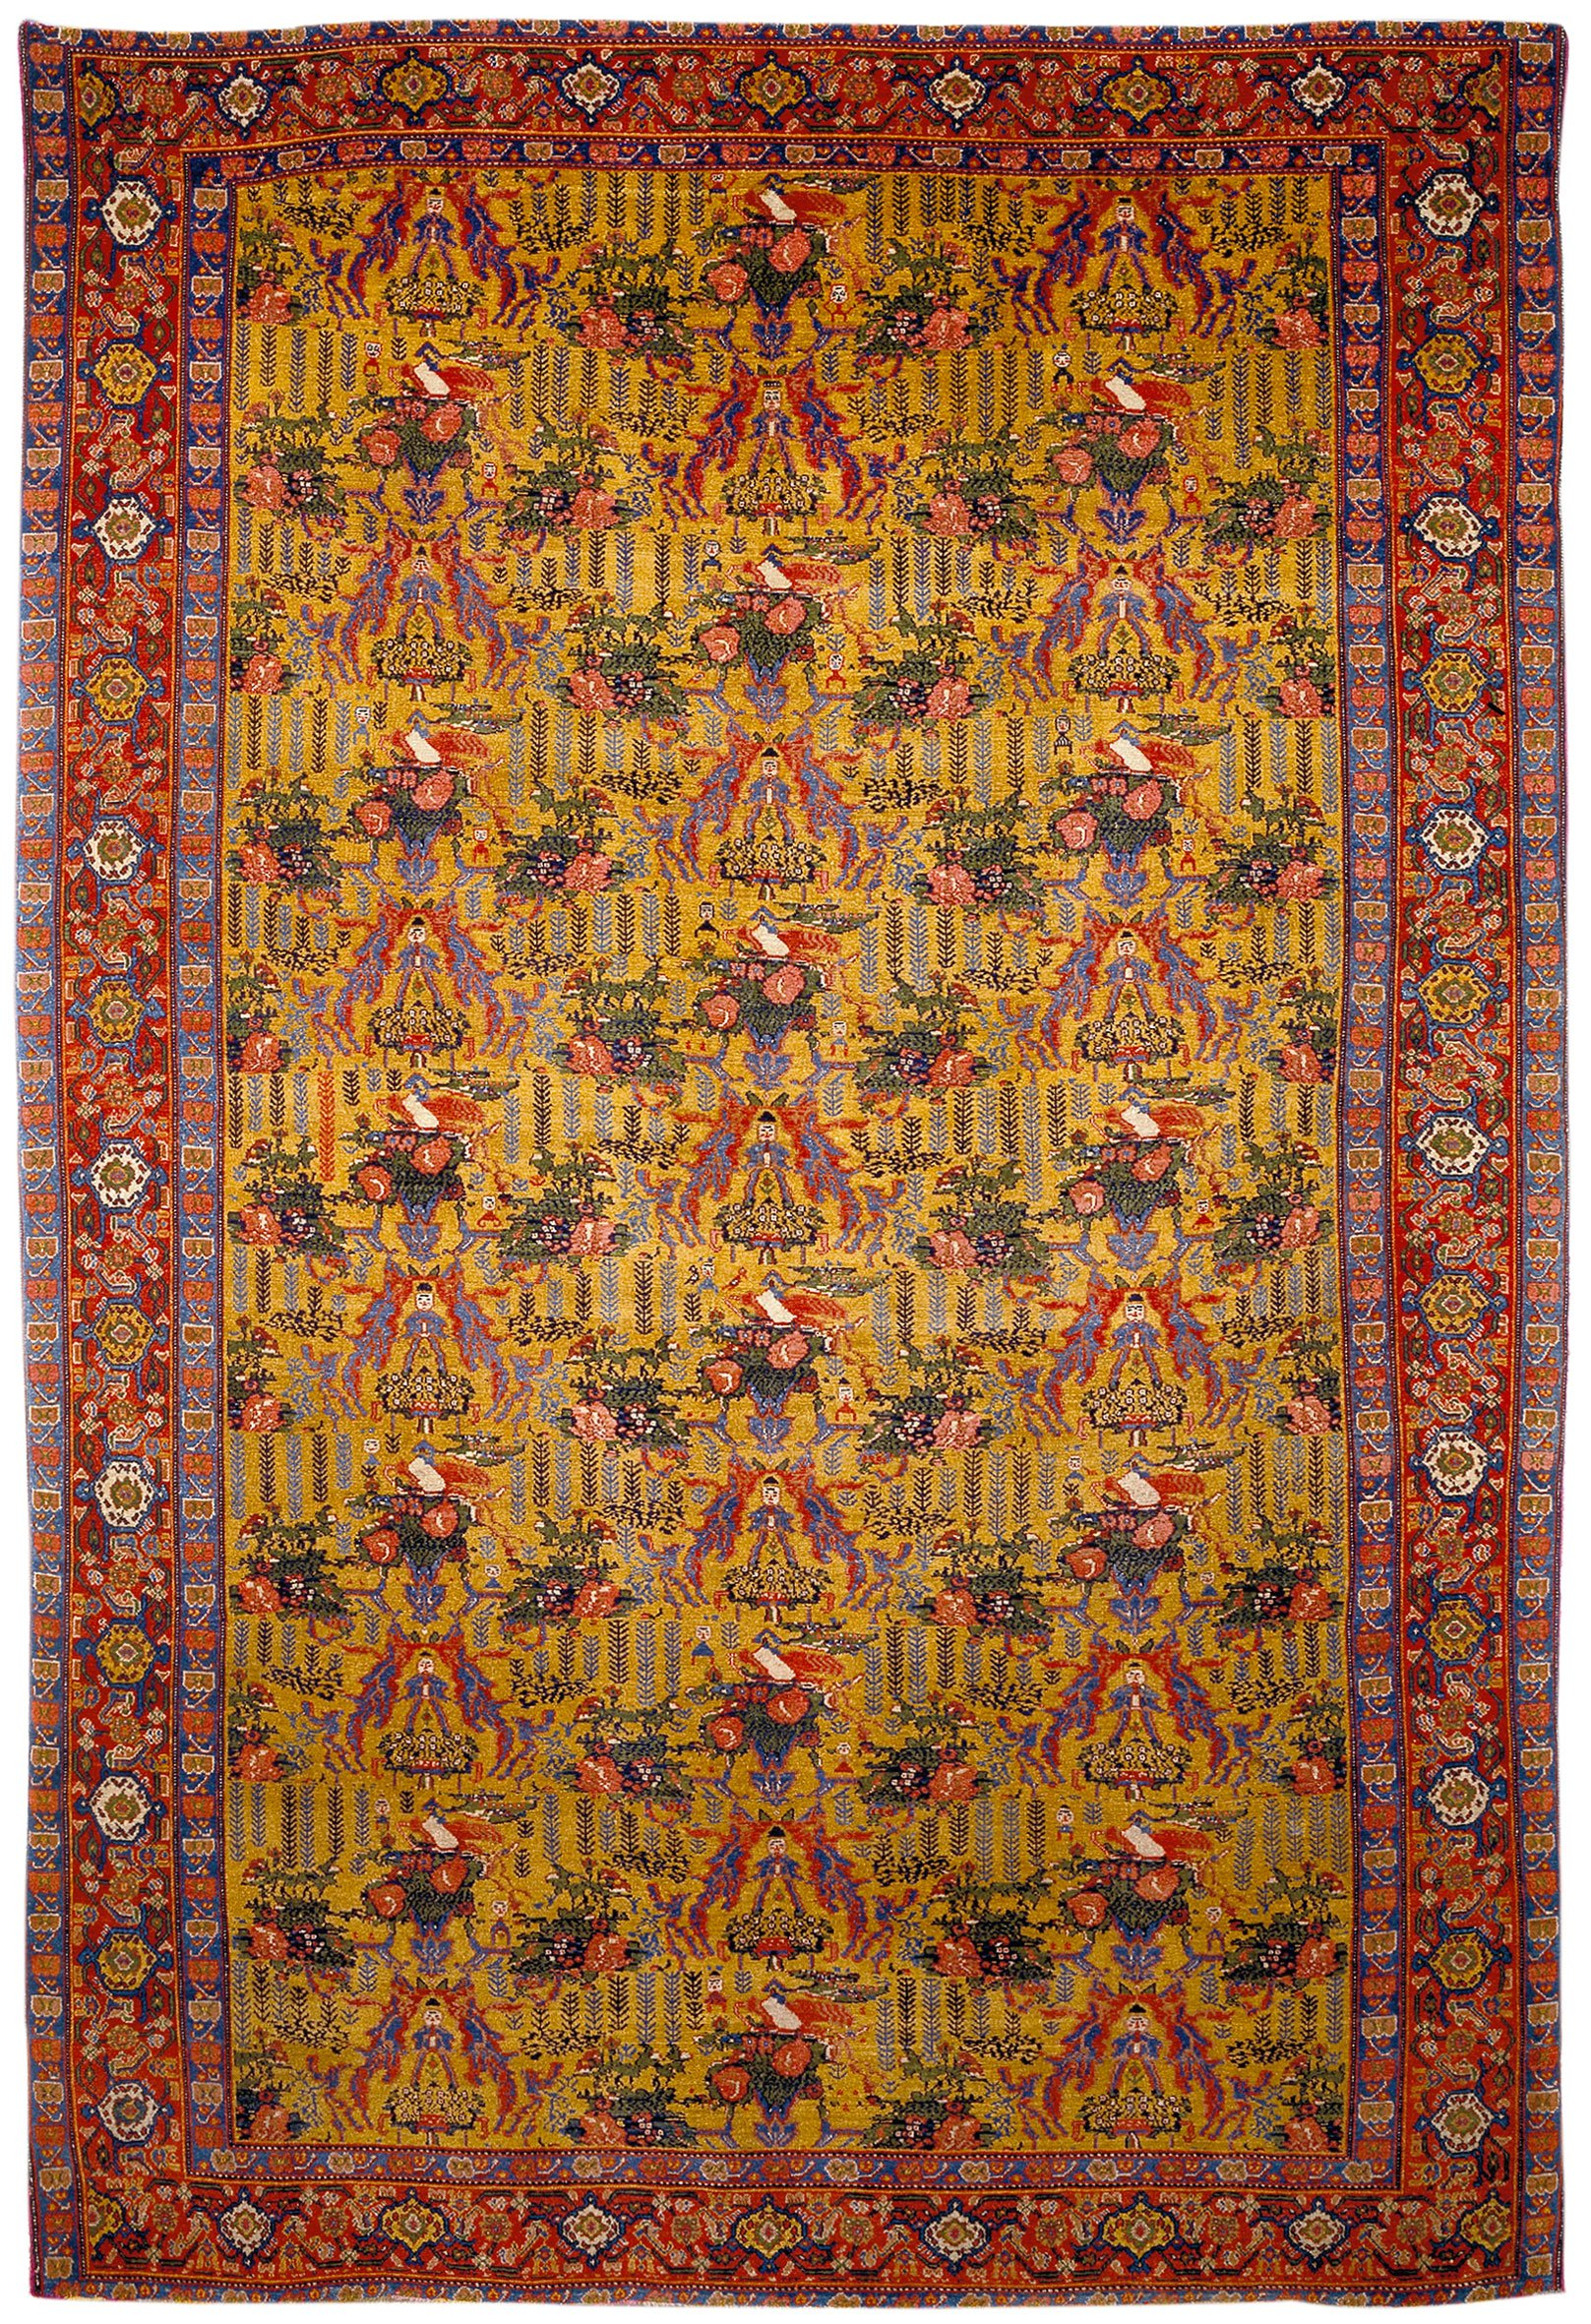 antique Senneh rug la datina